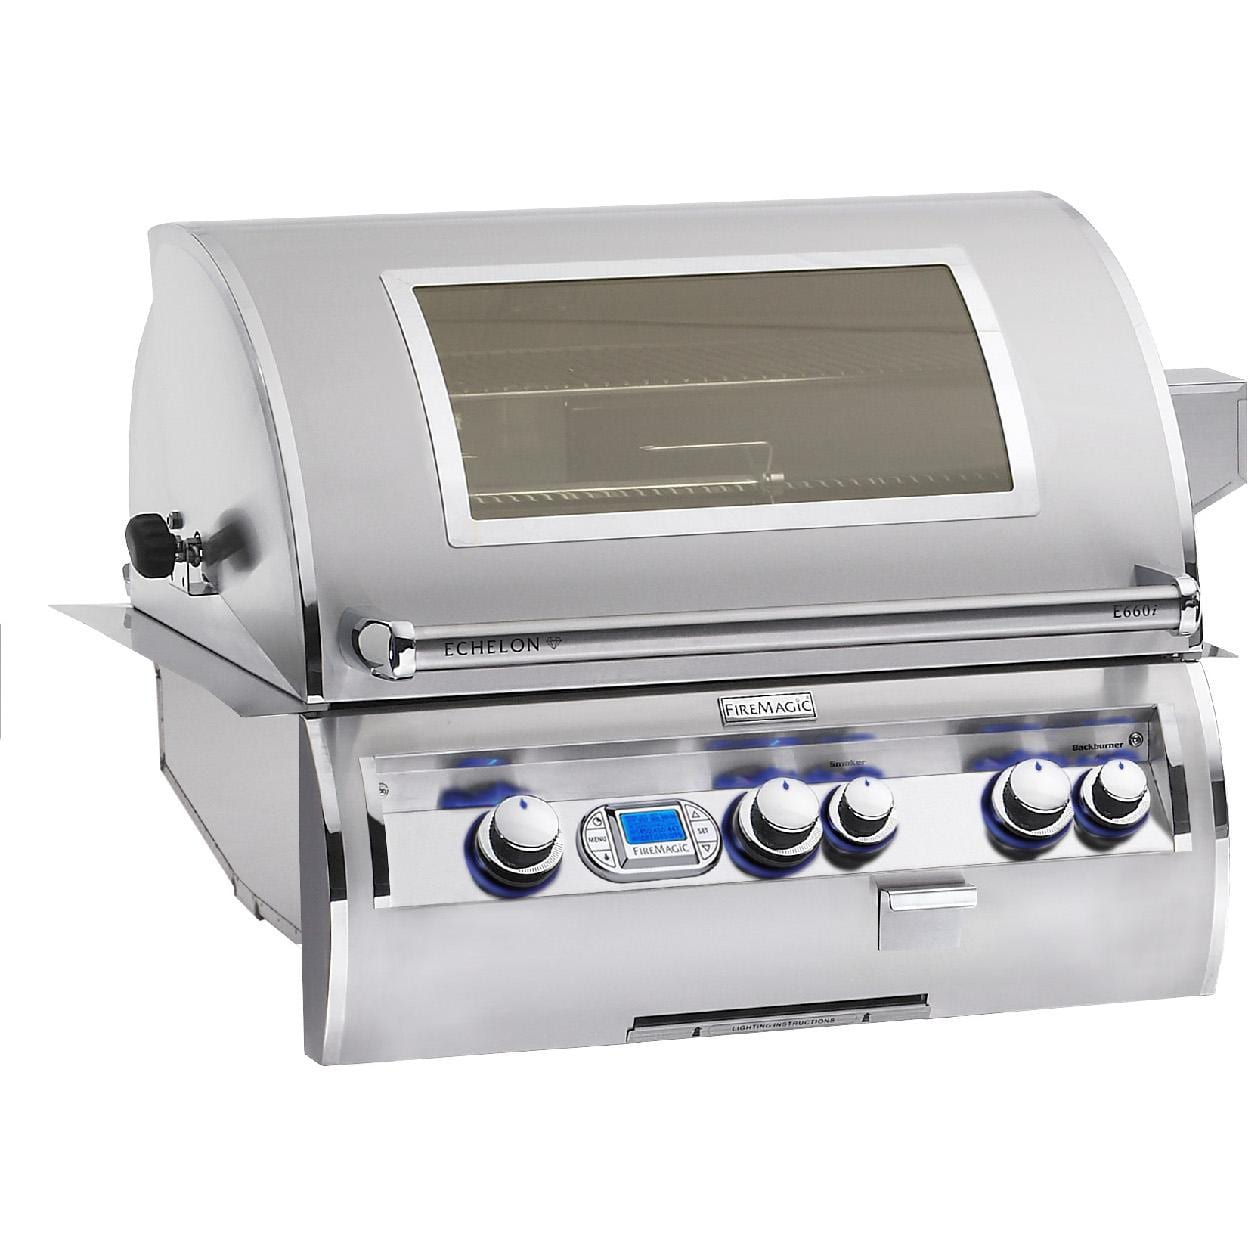 Fire Magic Echelon Diamond E660i Propane Gas Grill